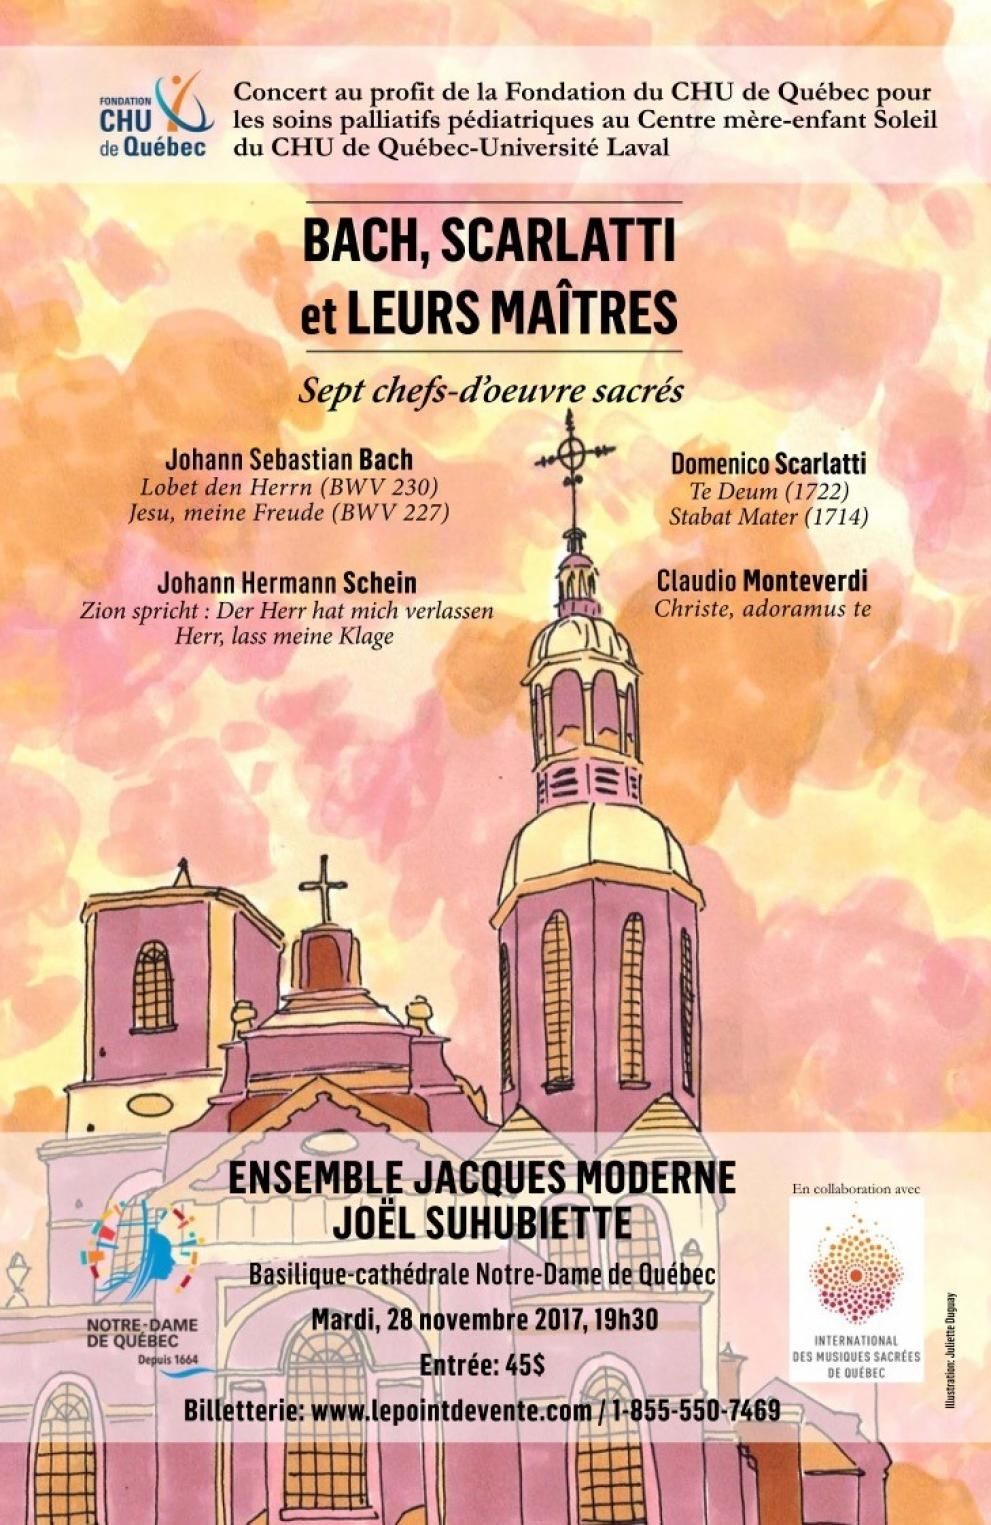 Fundraising concert at the basilica